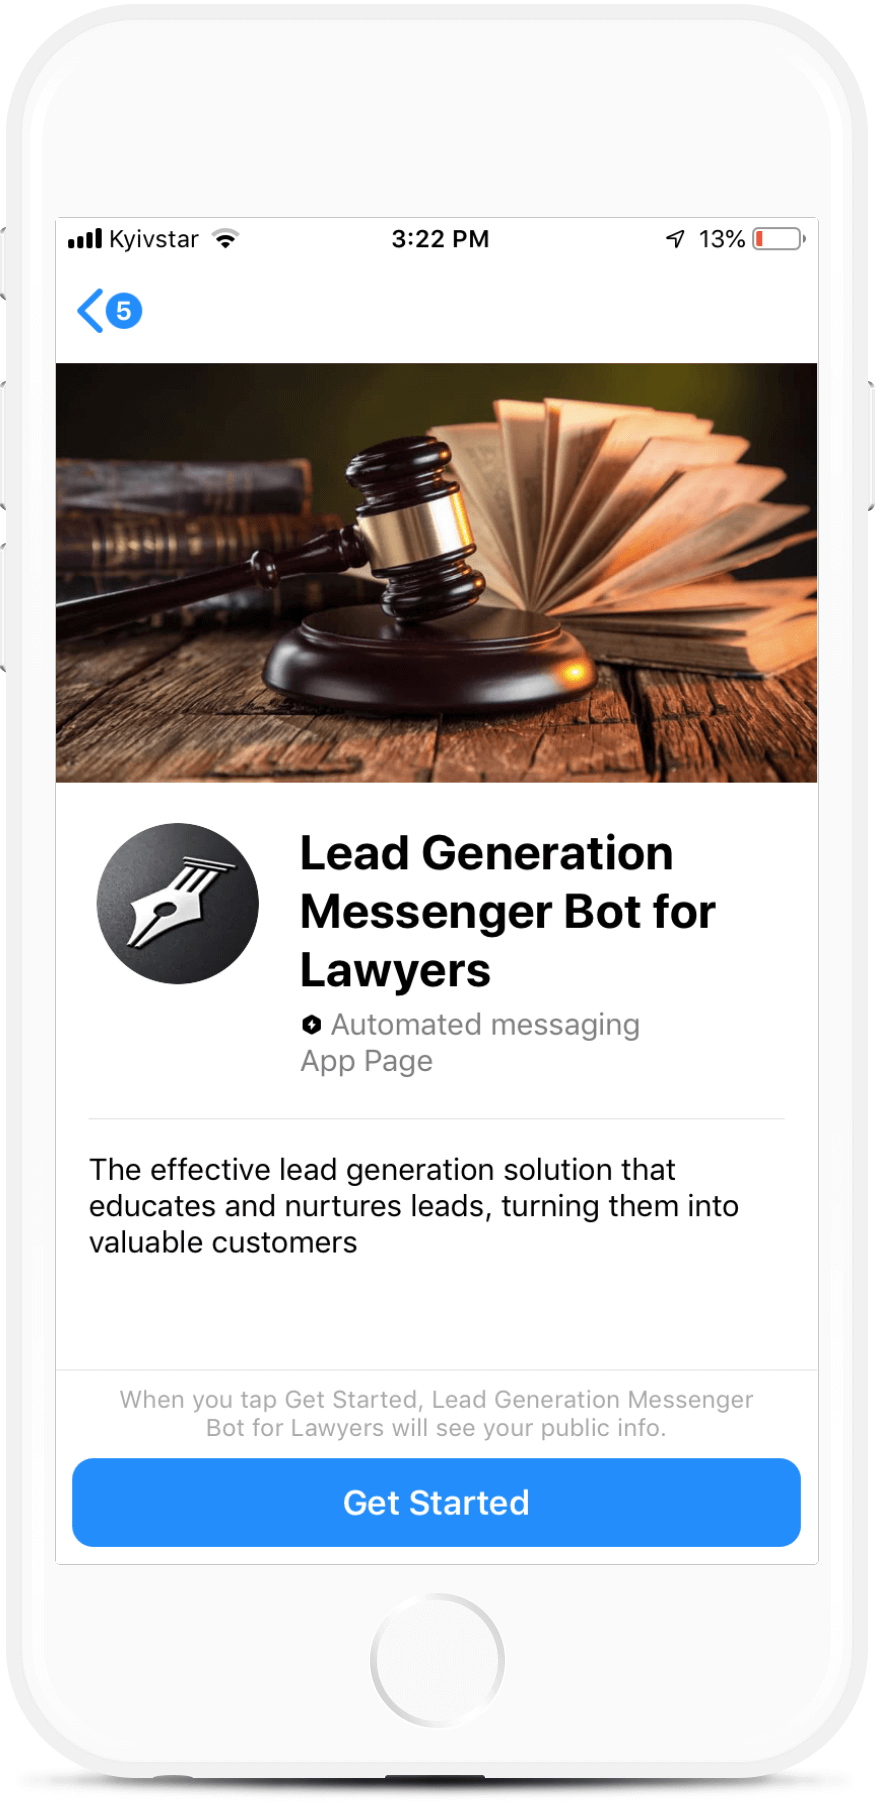 Lead Generation Messenger Bot for Lawyers